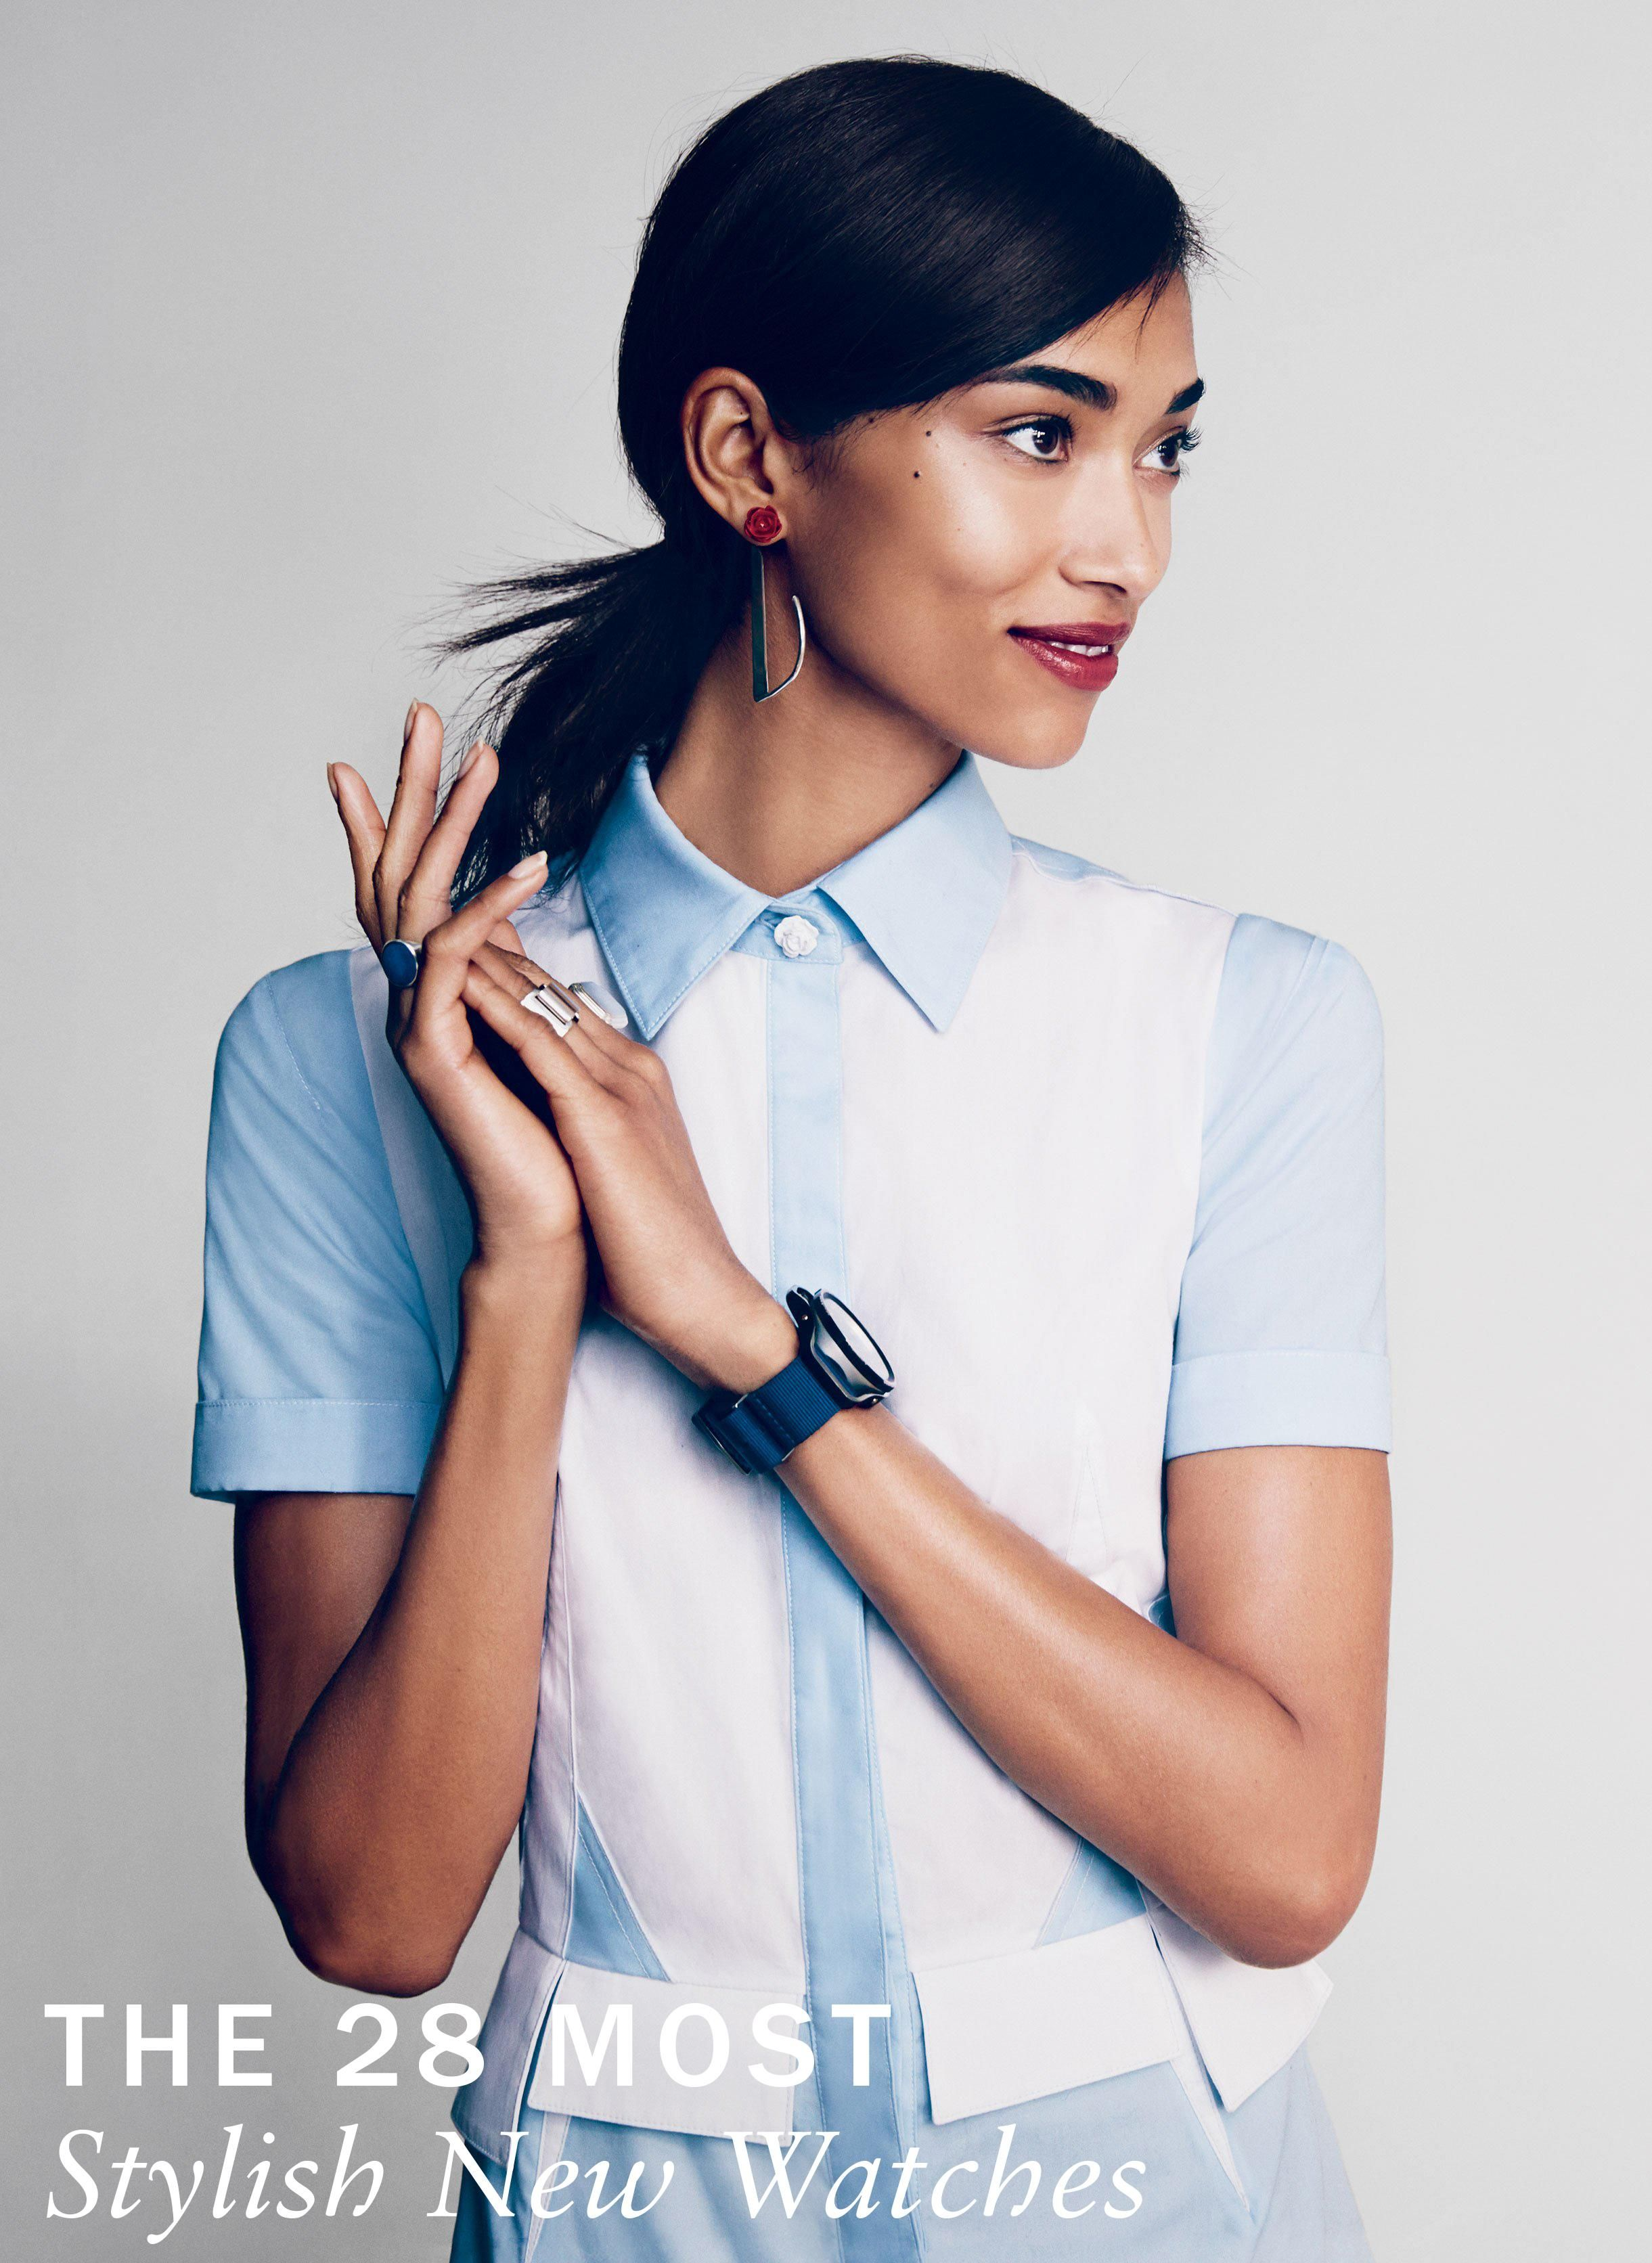 Looking for a new watch? Here are the 28 most stylish ones–read more on Vogue.com.